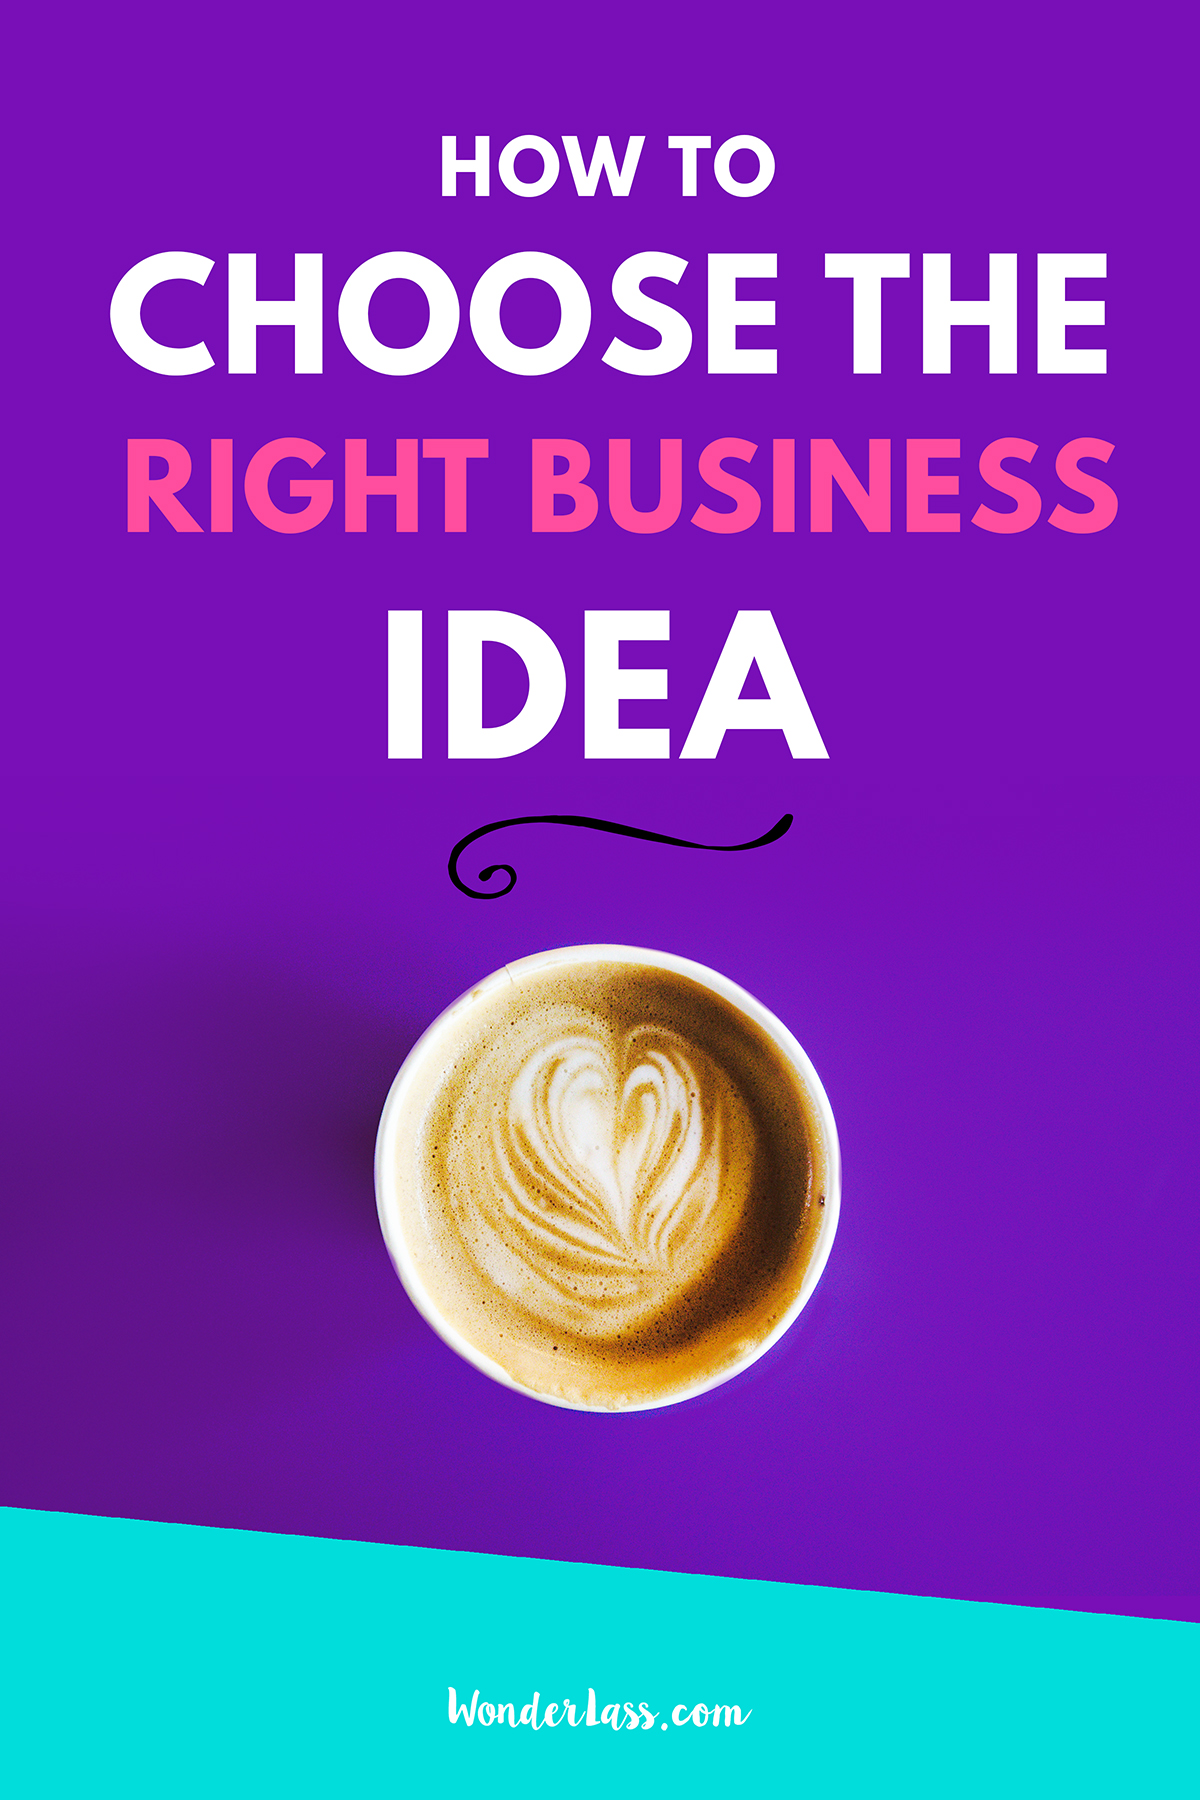 How to choose the right idea for starting a business!